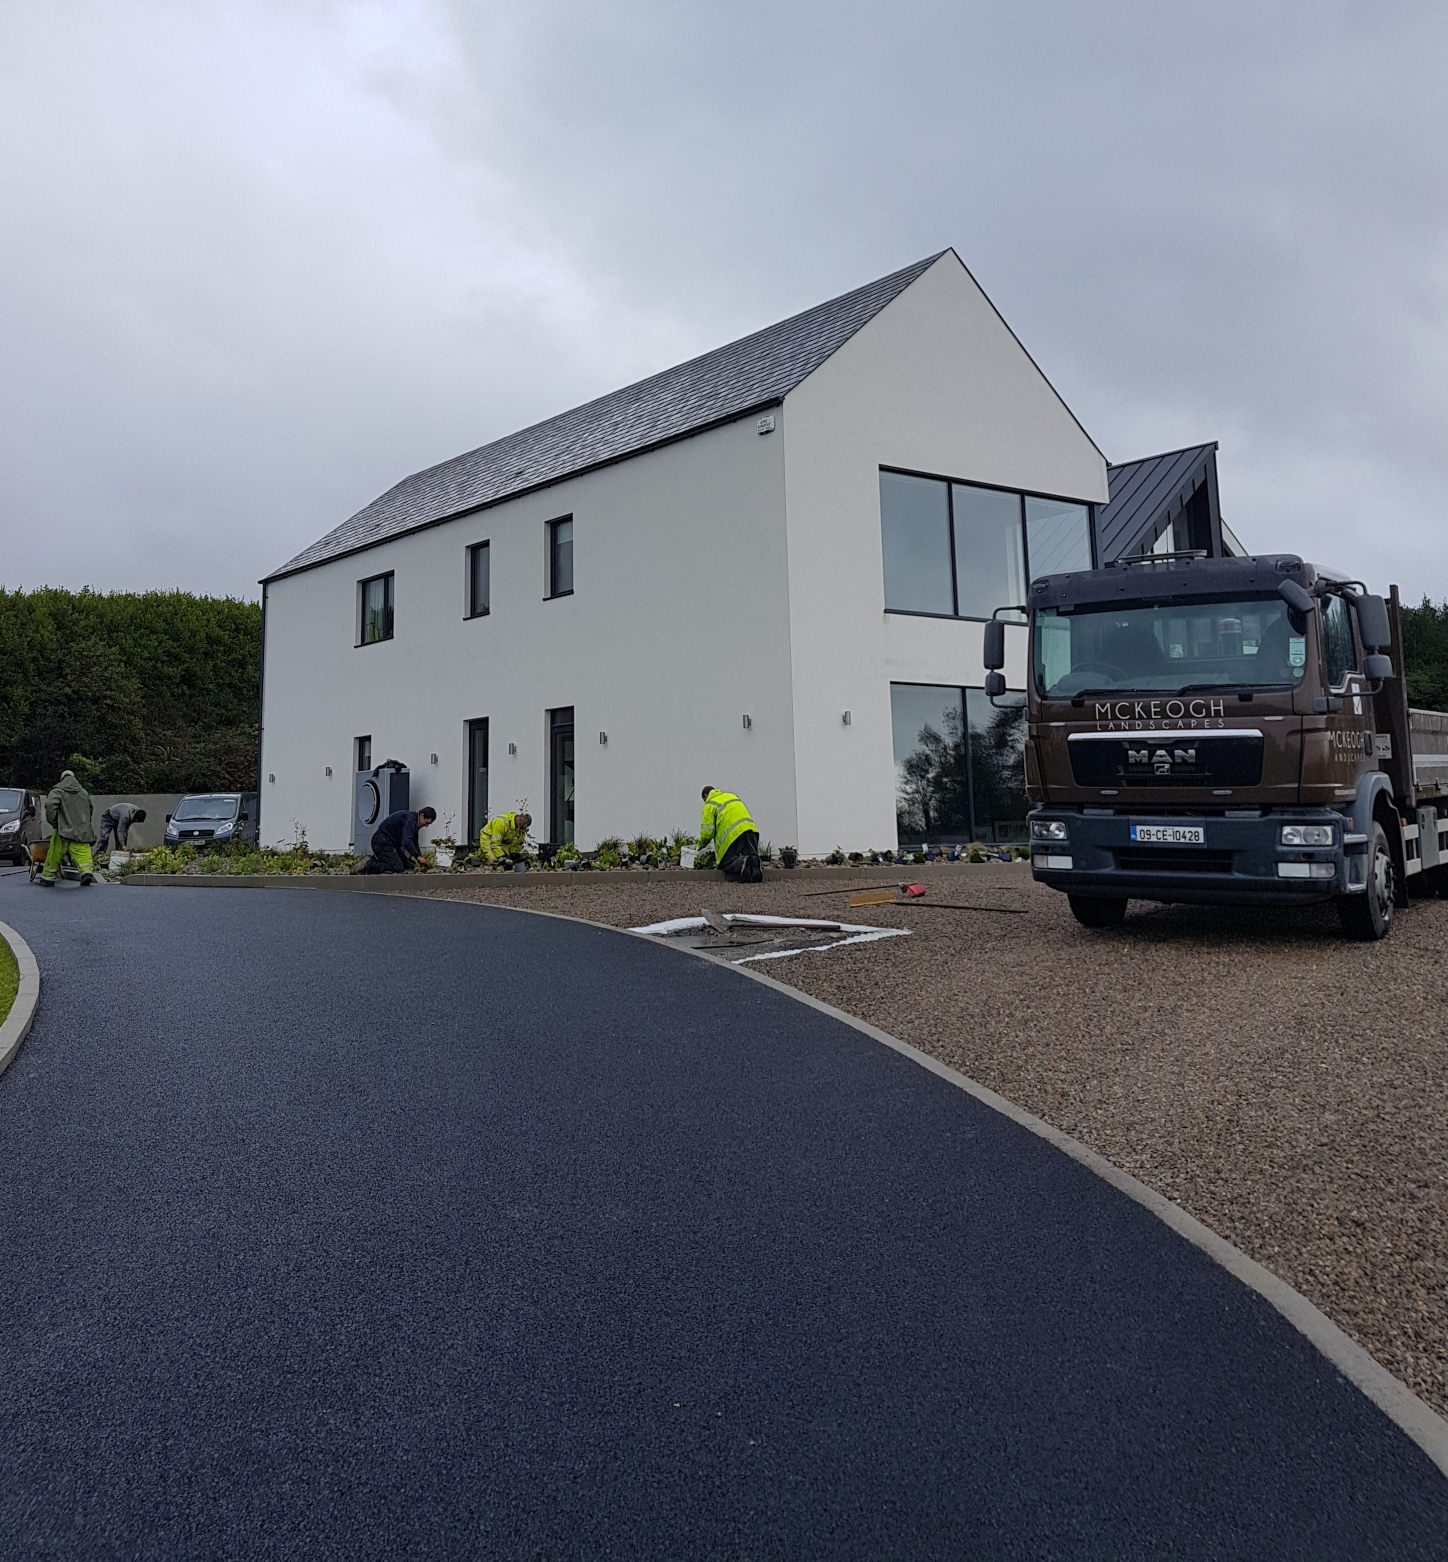 Tarmac-driveway-gravel-chips-clare